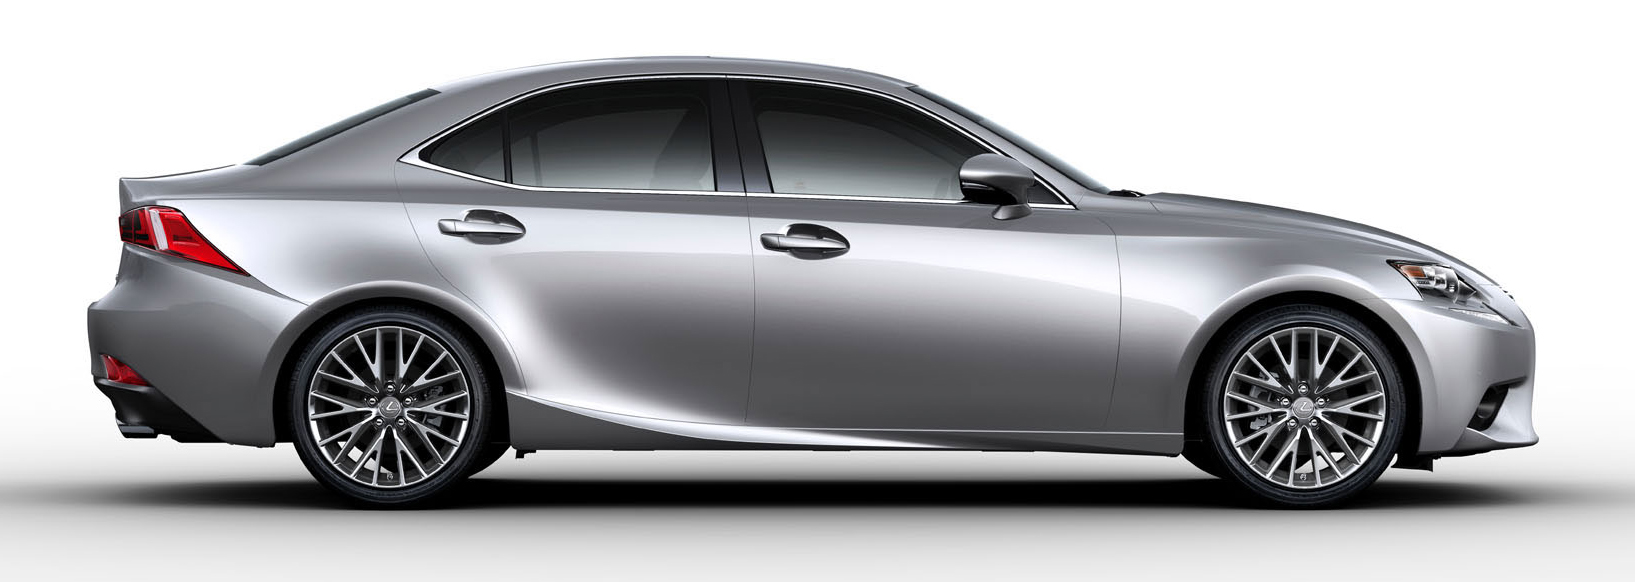 New 2014 Lexus IS Officially Revealed U2013 IS 250, IS 350, F Sport, IS 300h,  The First Ever Hybrid IS Paul Tan   Image 150102